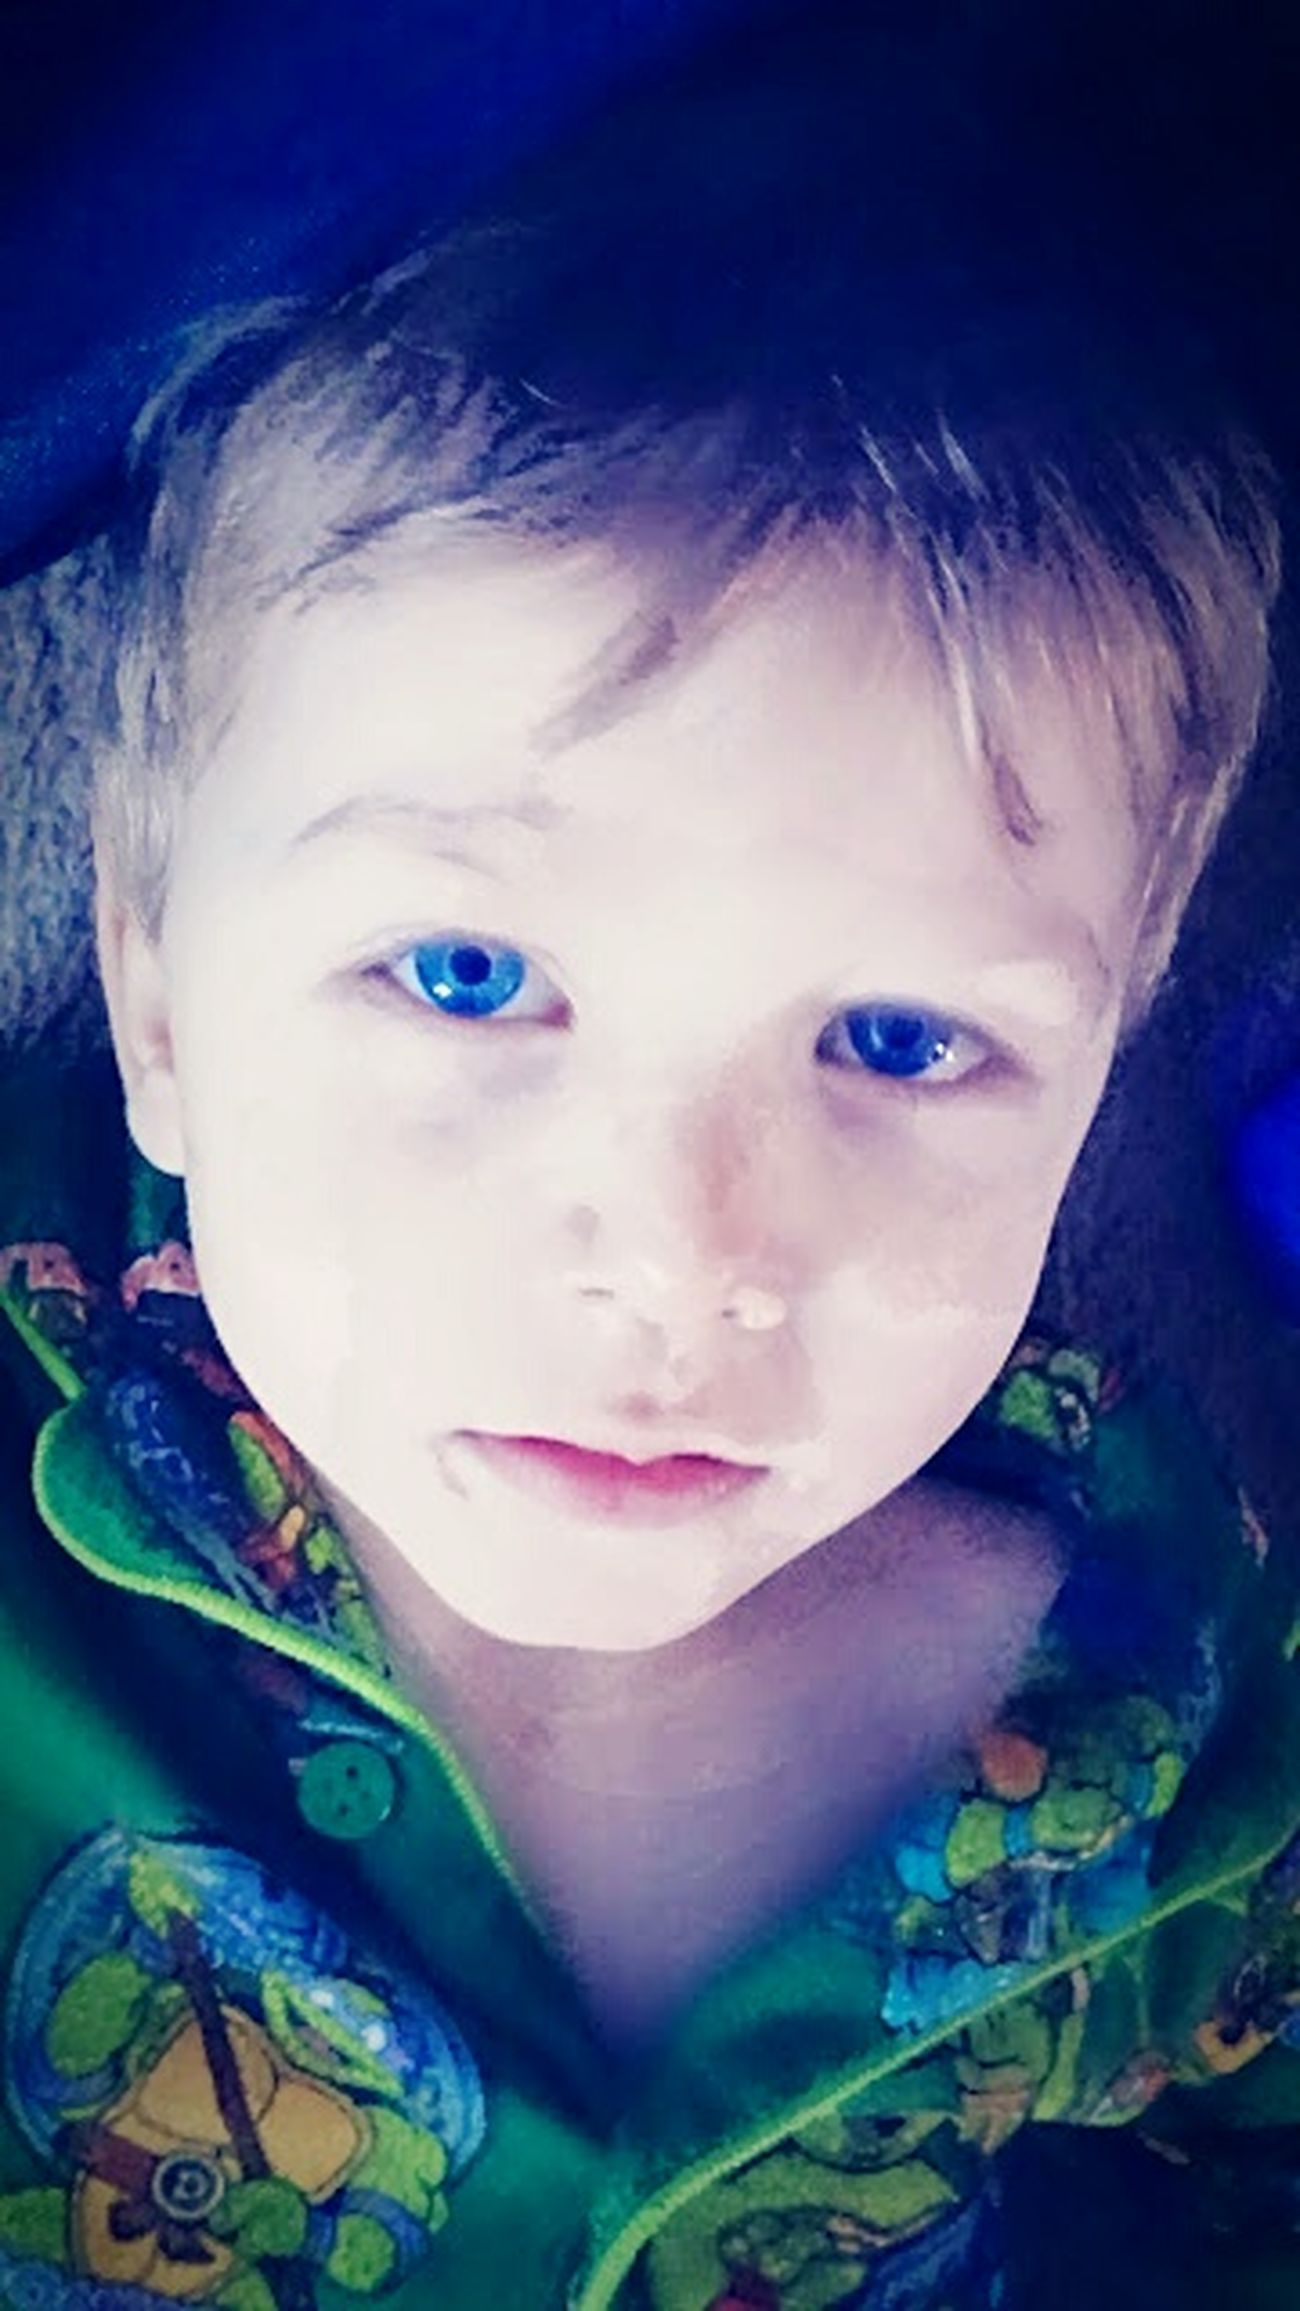 Popular Photos People Photography Family❤ Adorbs Whatmattersmost Babybrother Blue Eyes❤ Lovelovelove